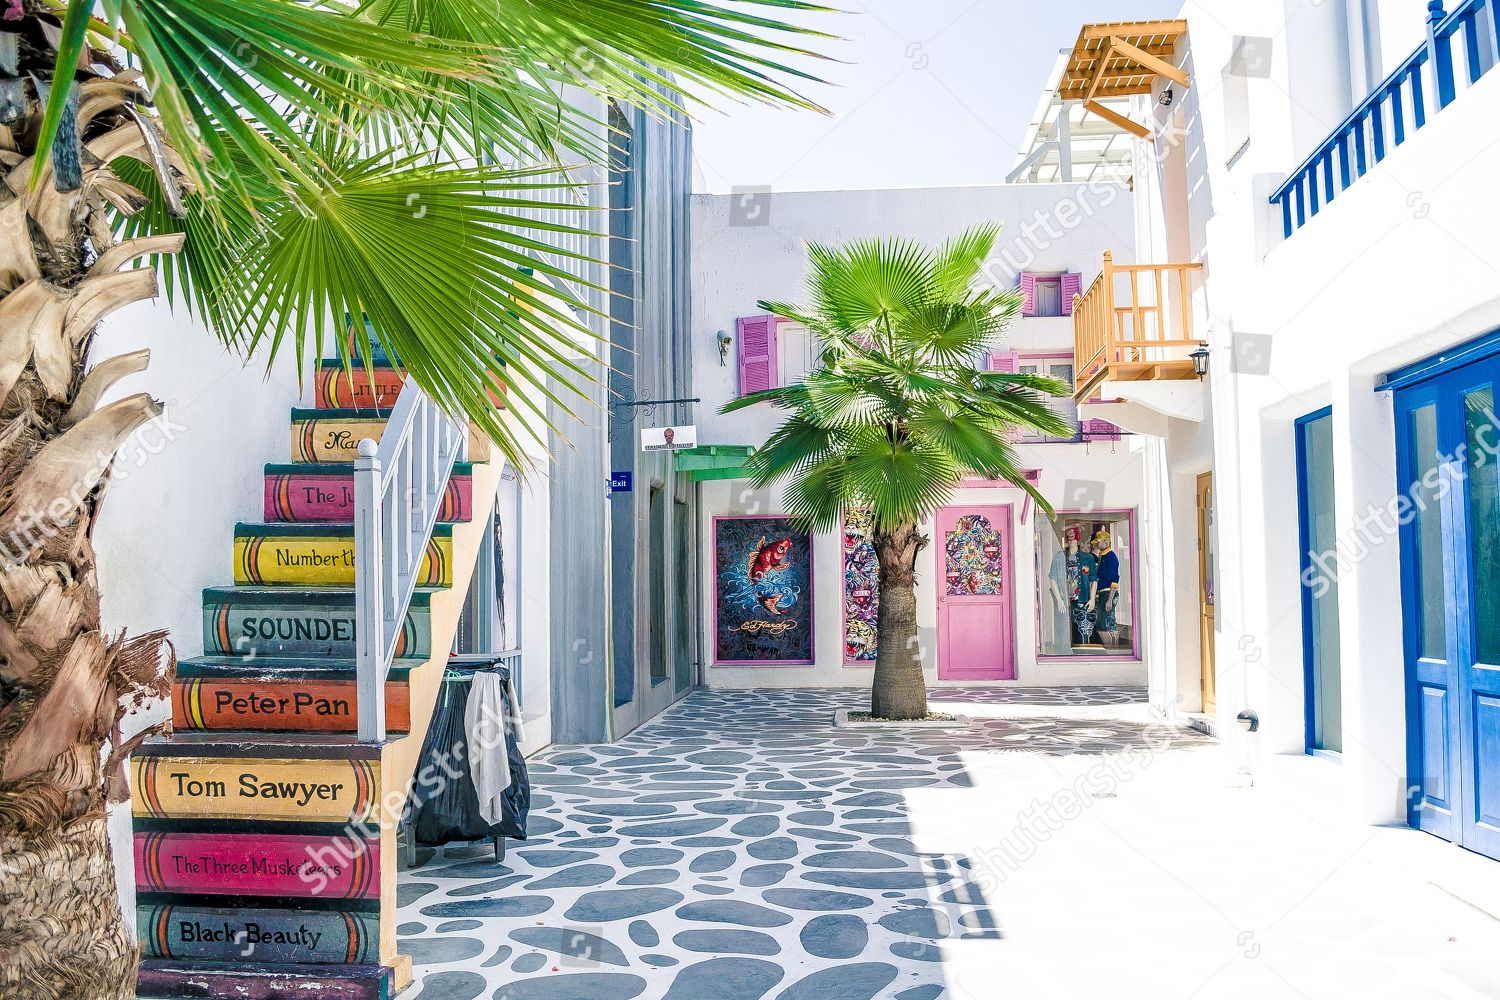 Mandatory Credit: Photo by Sipa Asia/Shutterstock (9350679k) The Santorini Park is a tourist attraction located in Hua Hin, Thailand, combining Greece with Thai style. The park is a replica of the Santorini Island. Tourists can enjoy beautiful scenery of Santorini without flying to Greece. Santorini Park in Hua Hin, Thailand - 01 Feb 2018